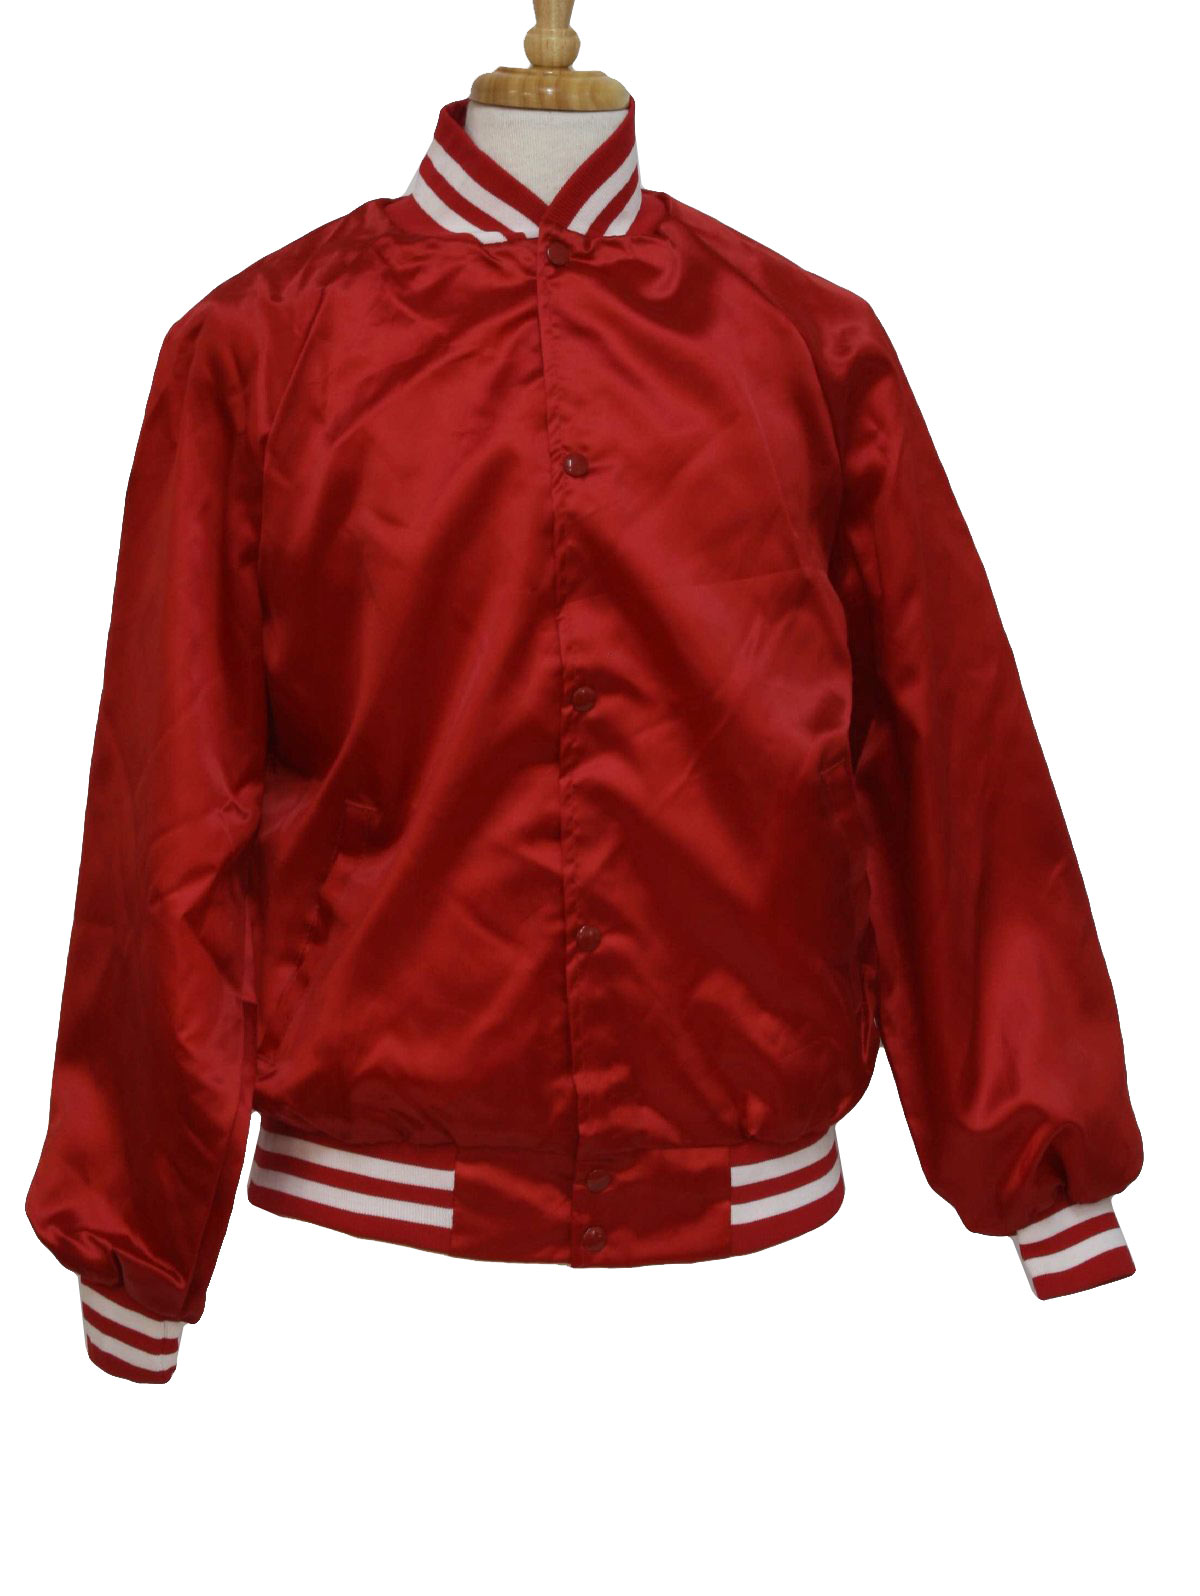 Similiar Satin Jackets From The 80s Keywords